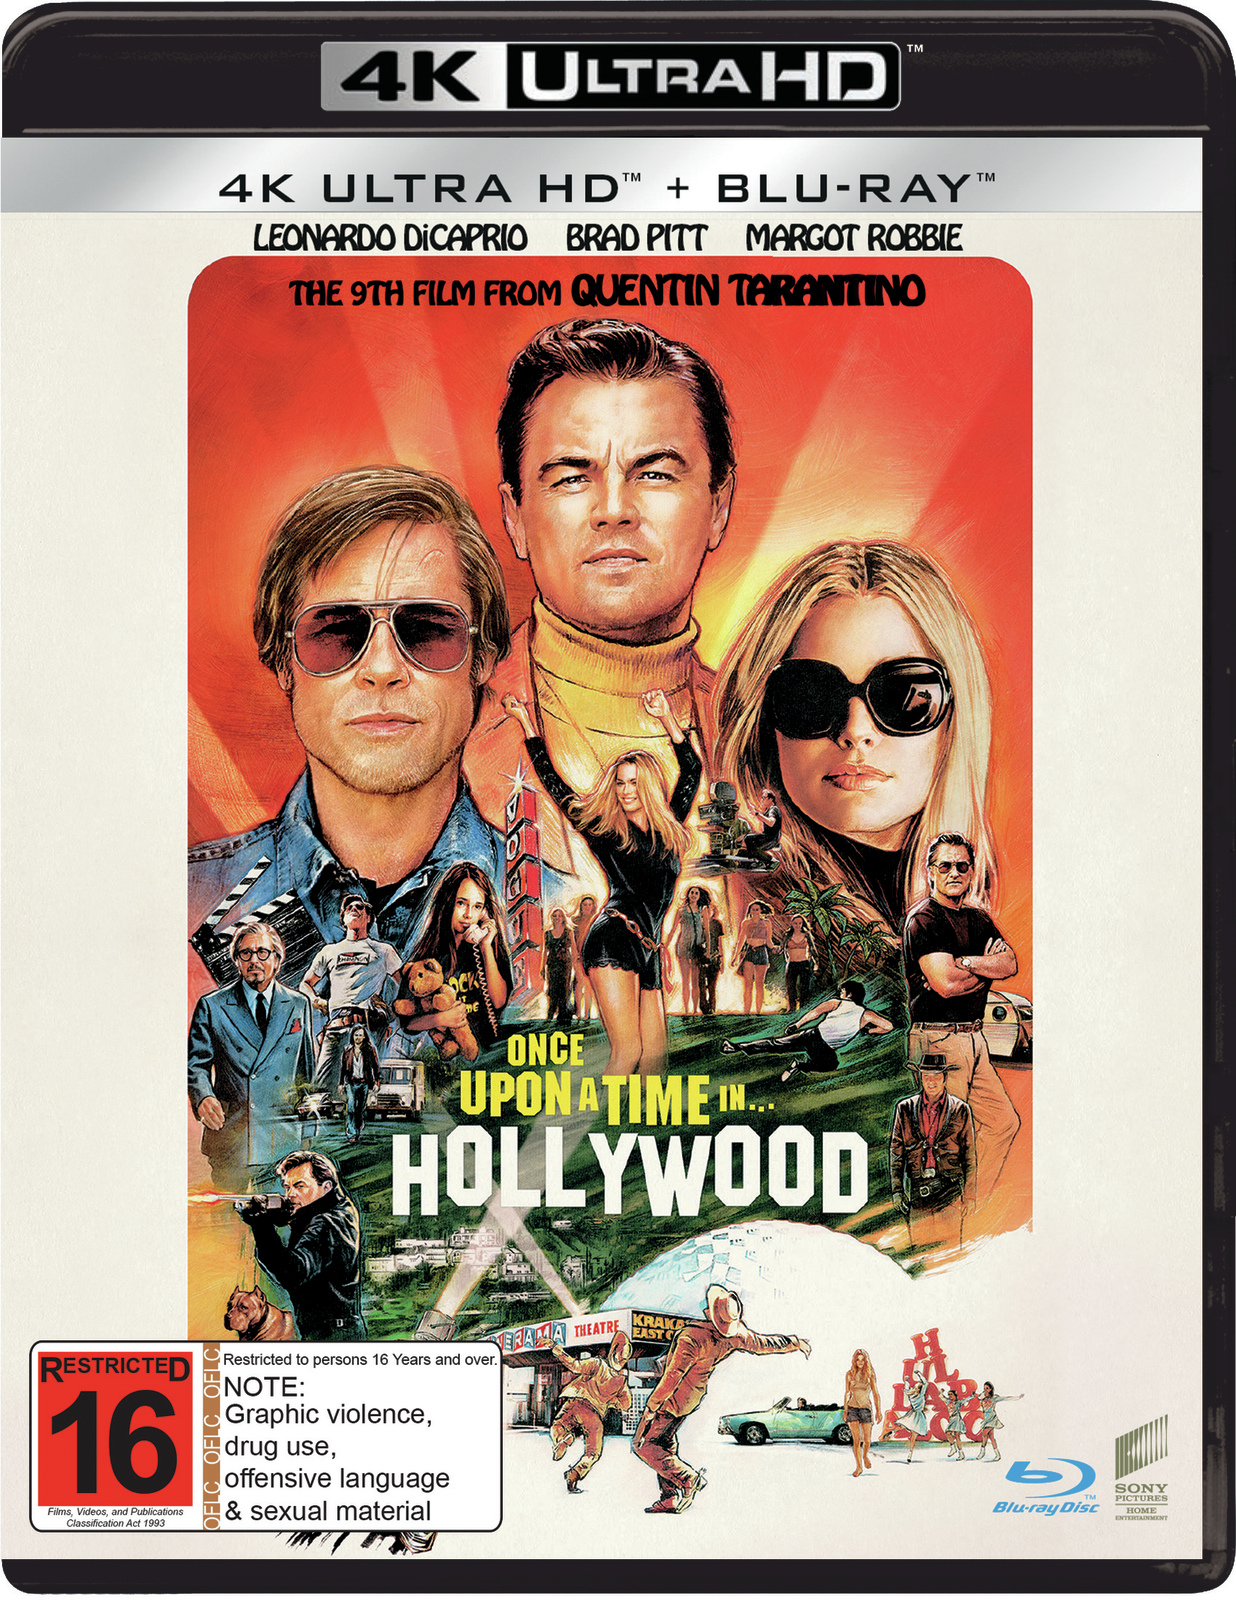 Once Upon a Time in Hollywood (4K UHD + Blu-ray) on UHD Blu-ray image